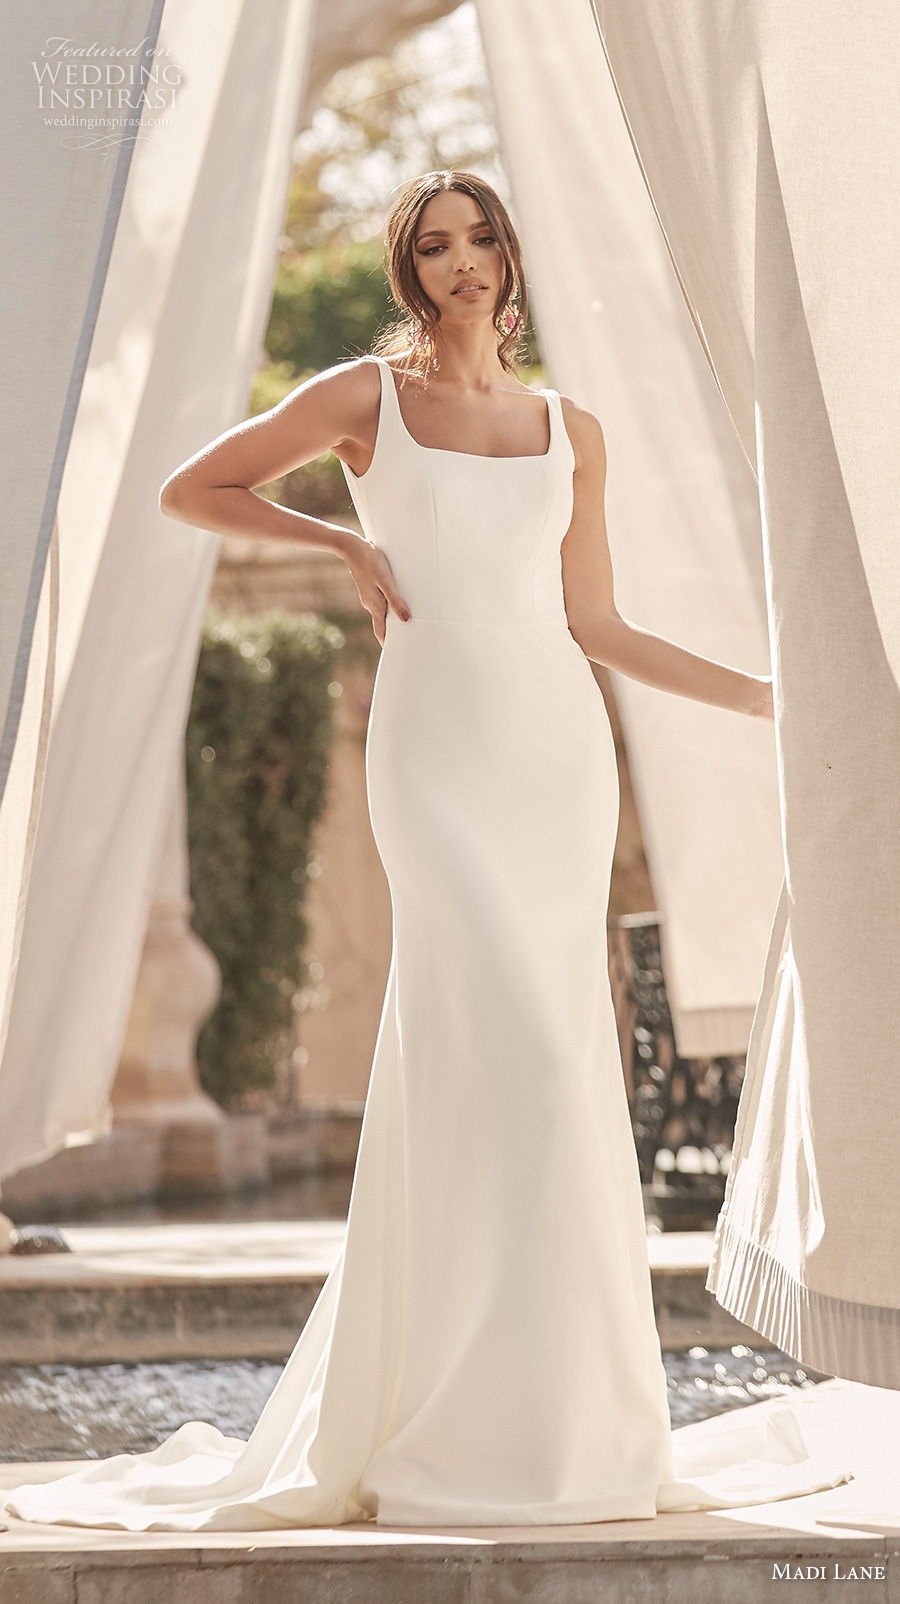 madi lane fall 2020 bridal sleeveless with strap square neck simple minimalist elegant fit and flare wedding dress backless low square back chapel train (16) mv